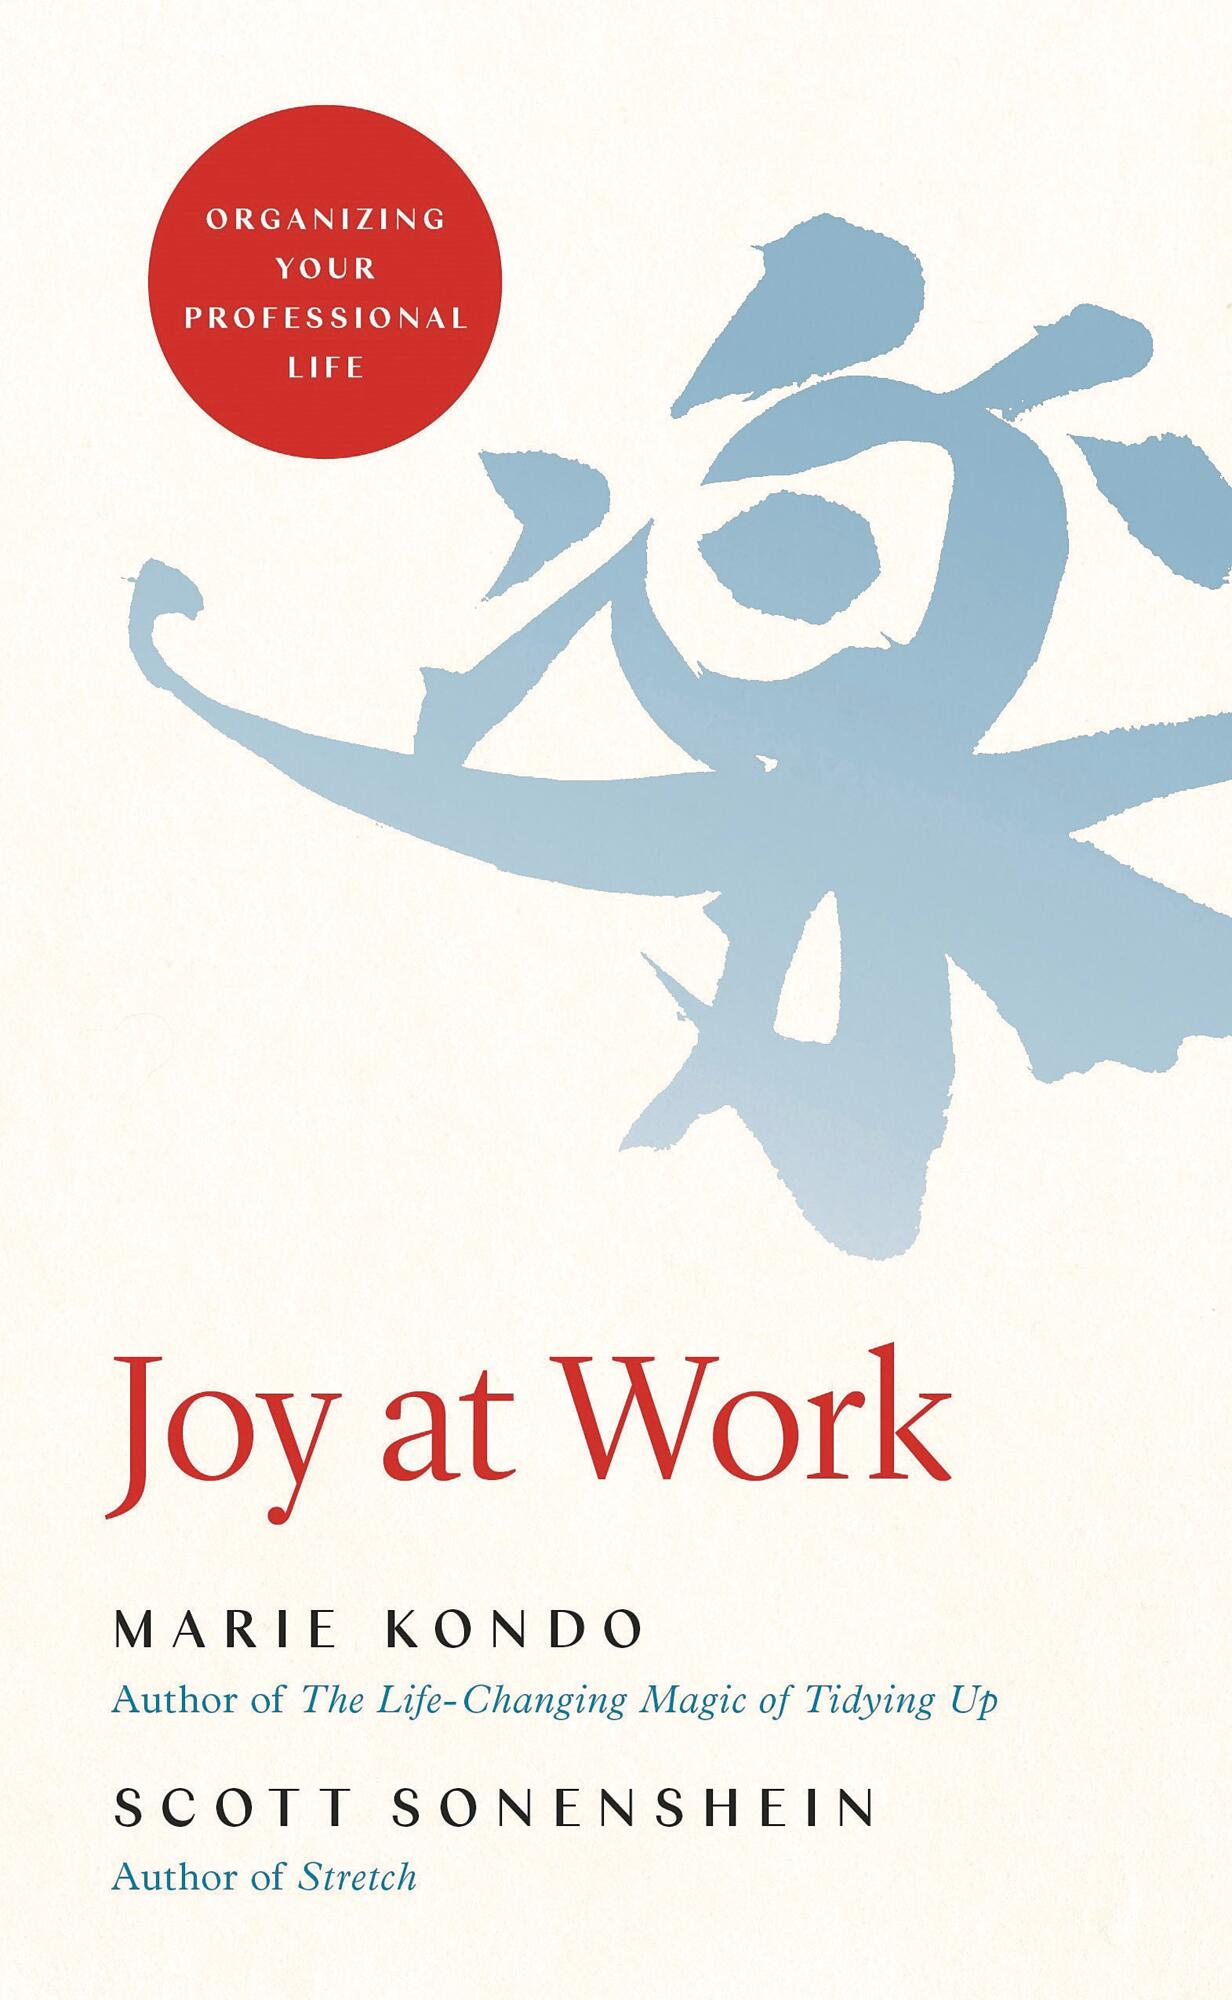 Joy at Work by Marie Kondo